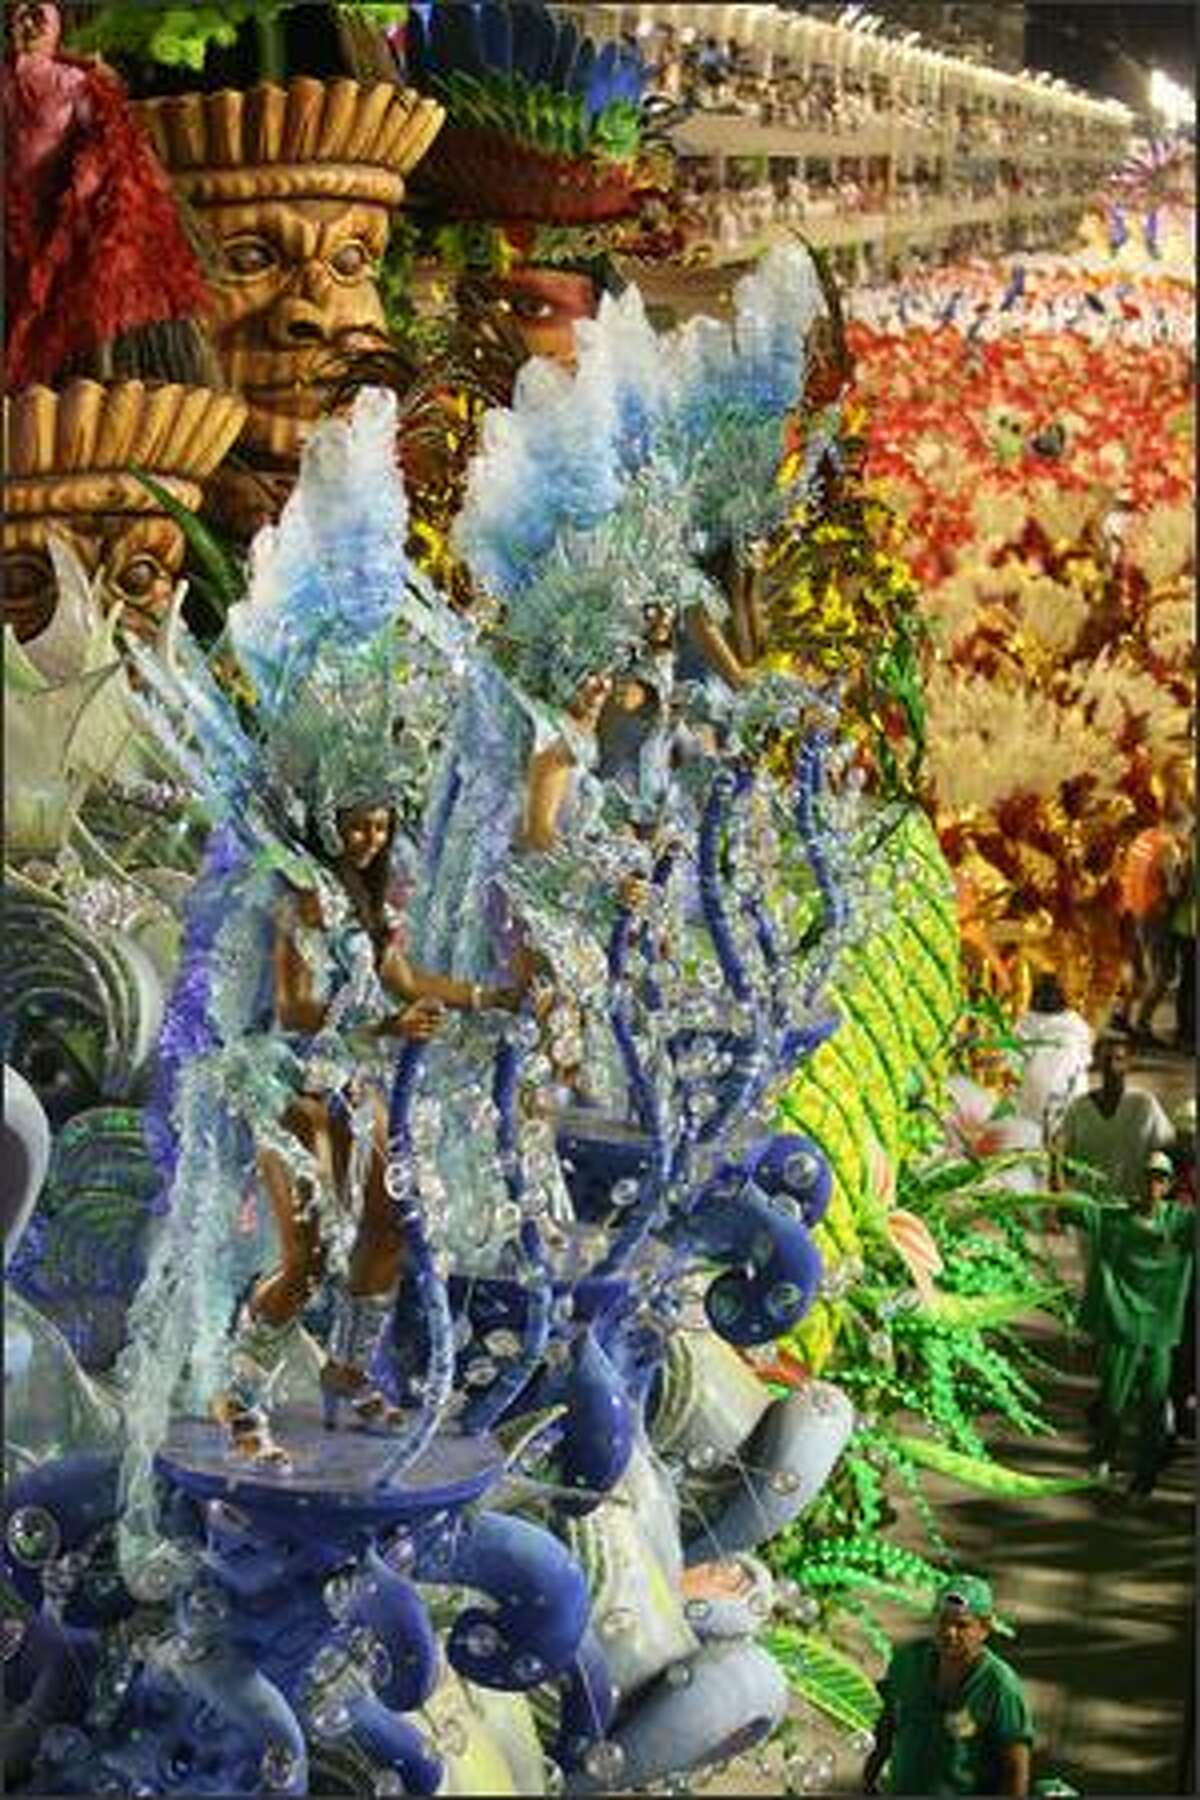 Academicos do Grande Rio samba school dancers perform down the Sambodrome on the first night of the Carnival samba school parade in Rio de Janeiro, Brazil on Monday. Carnival is the biggest and most popular celebration in Brazil and runs throughout the country until February 24.